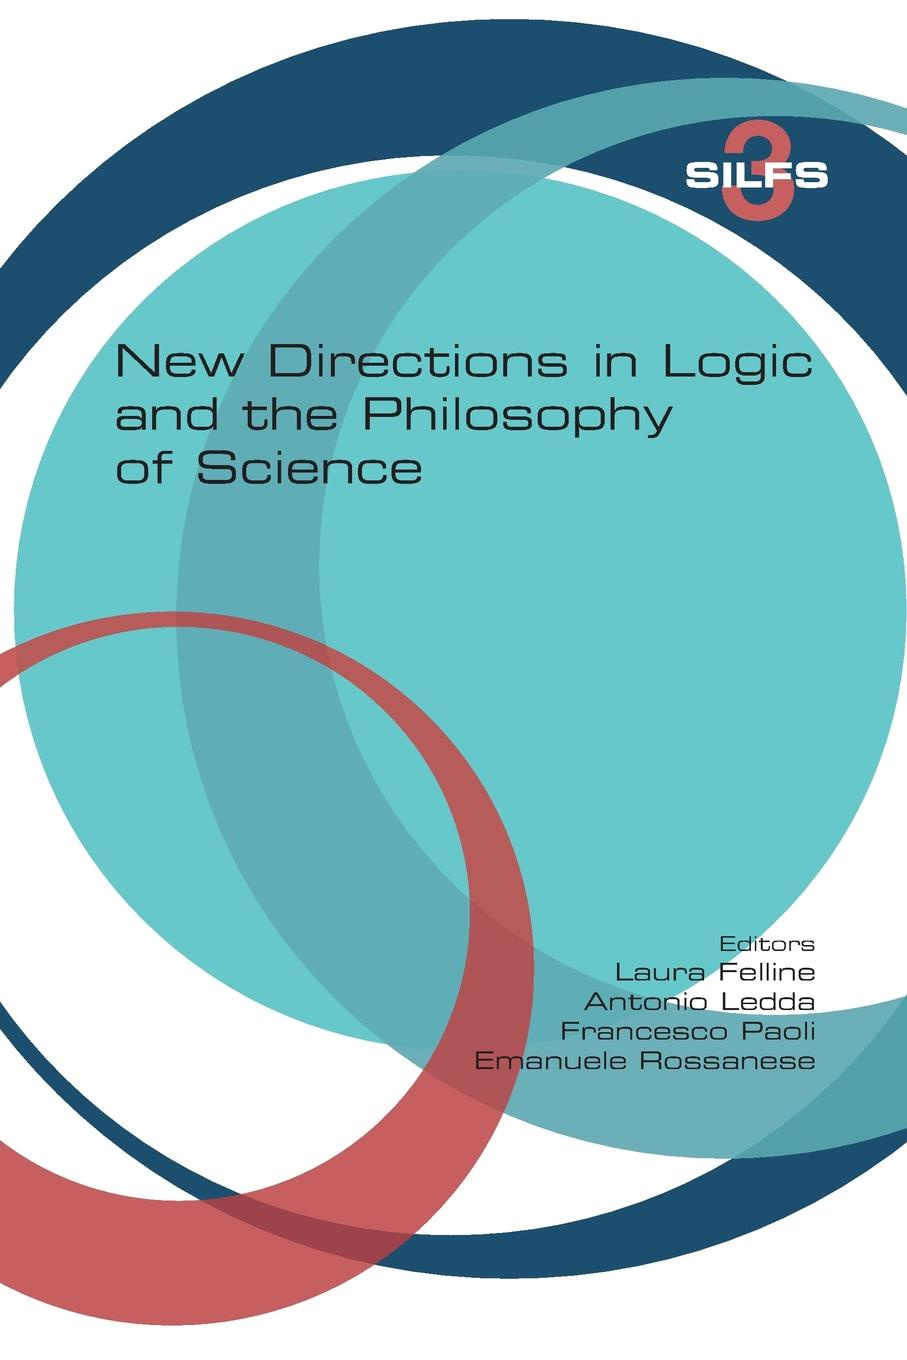 New Directions in Logic and the Philosophy of Science foundations of the formal sciences vii bringing together philosophy and sociology of science